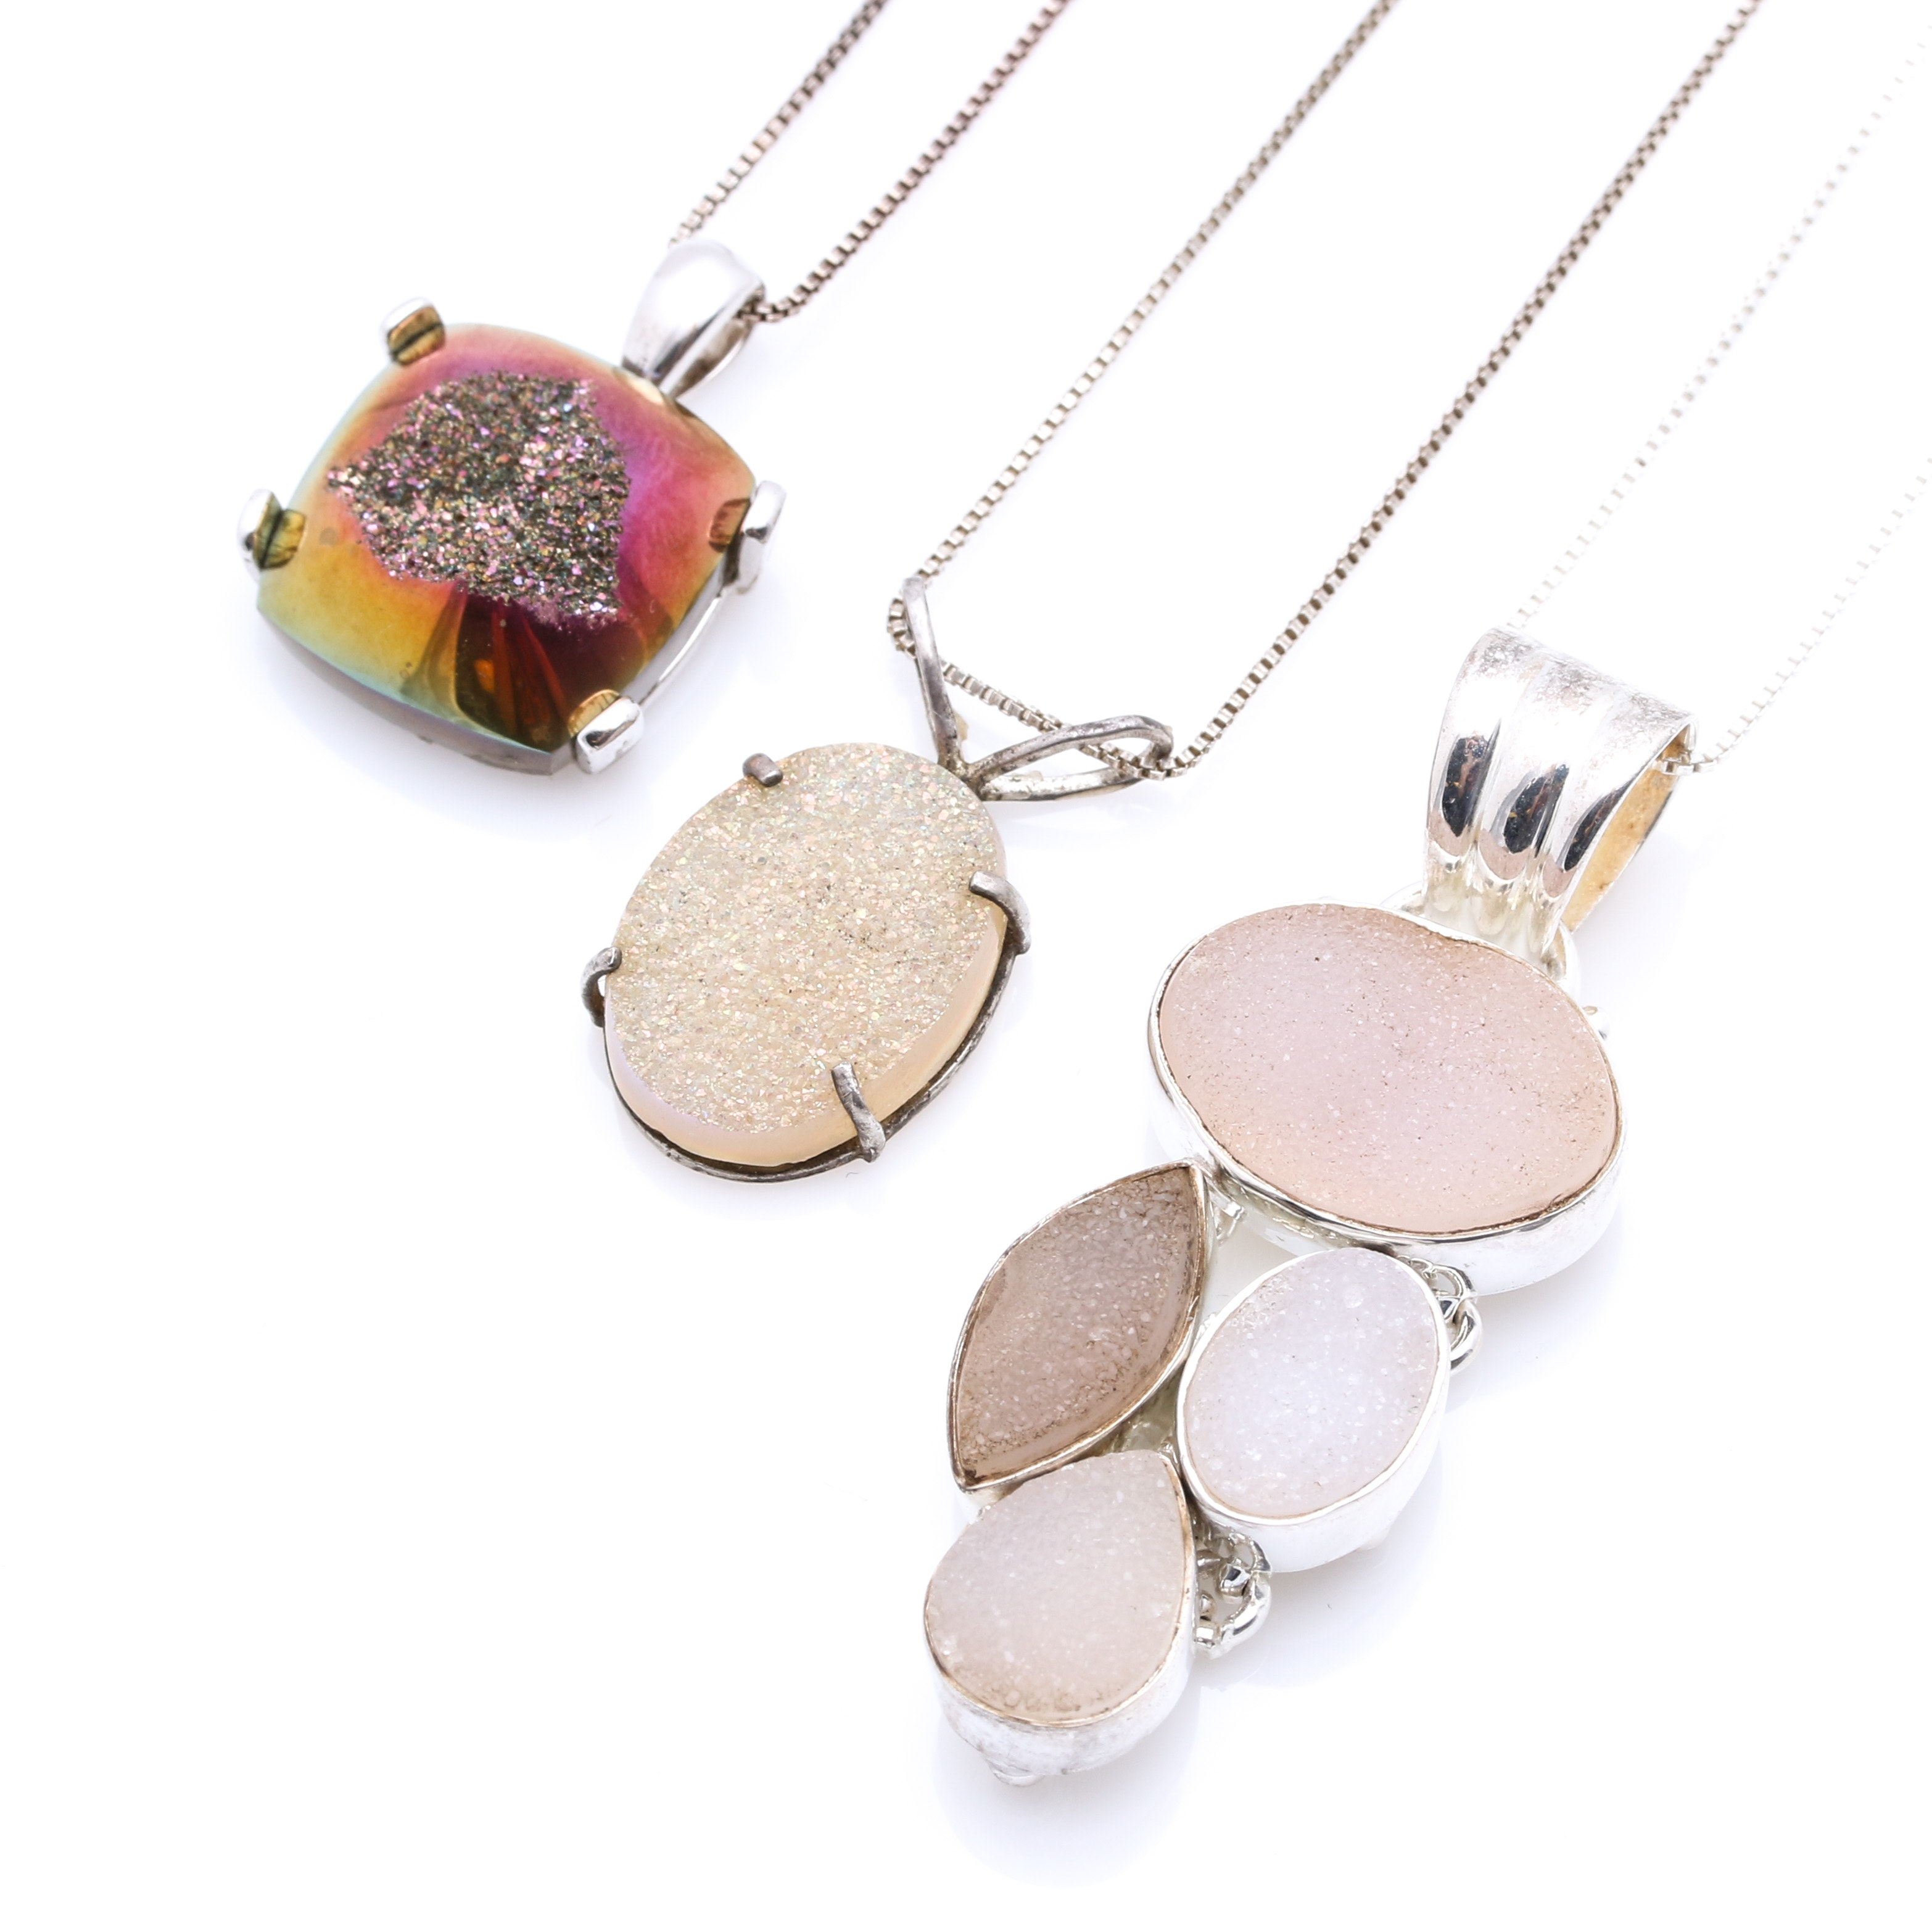 Sterling Silver Necklaces with Coated Druzy Quartz